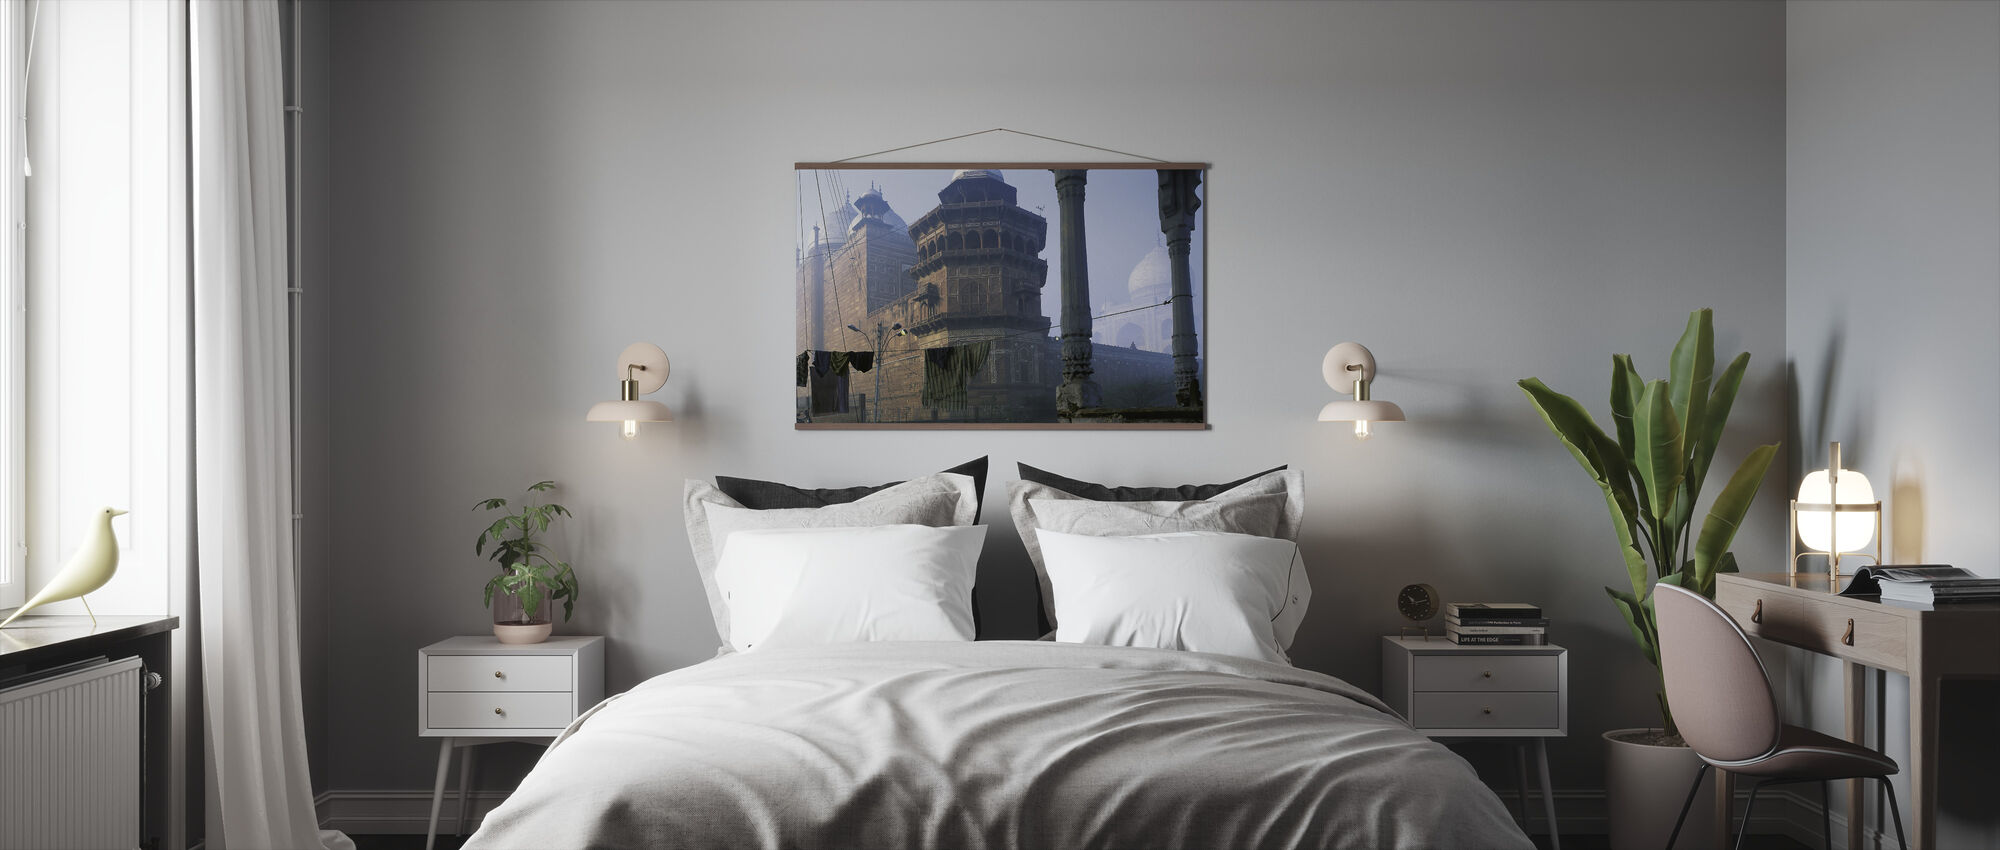 Taj Mahal, Agra, India - Poster - Bedroom